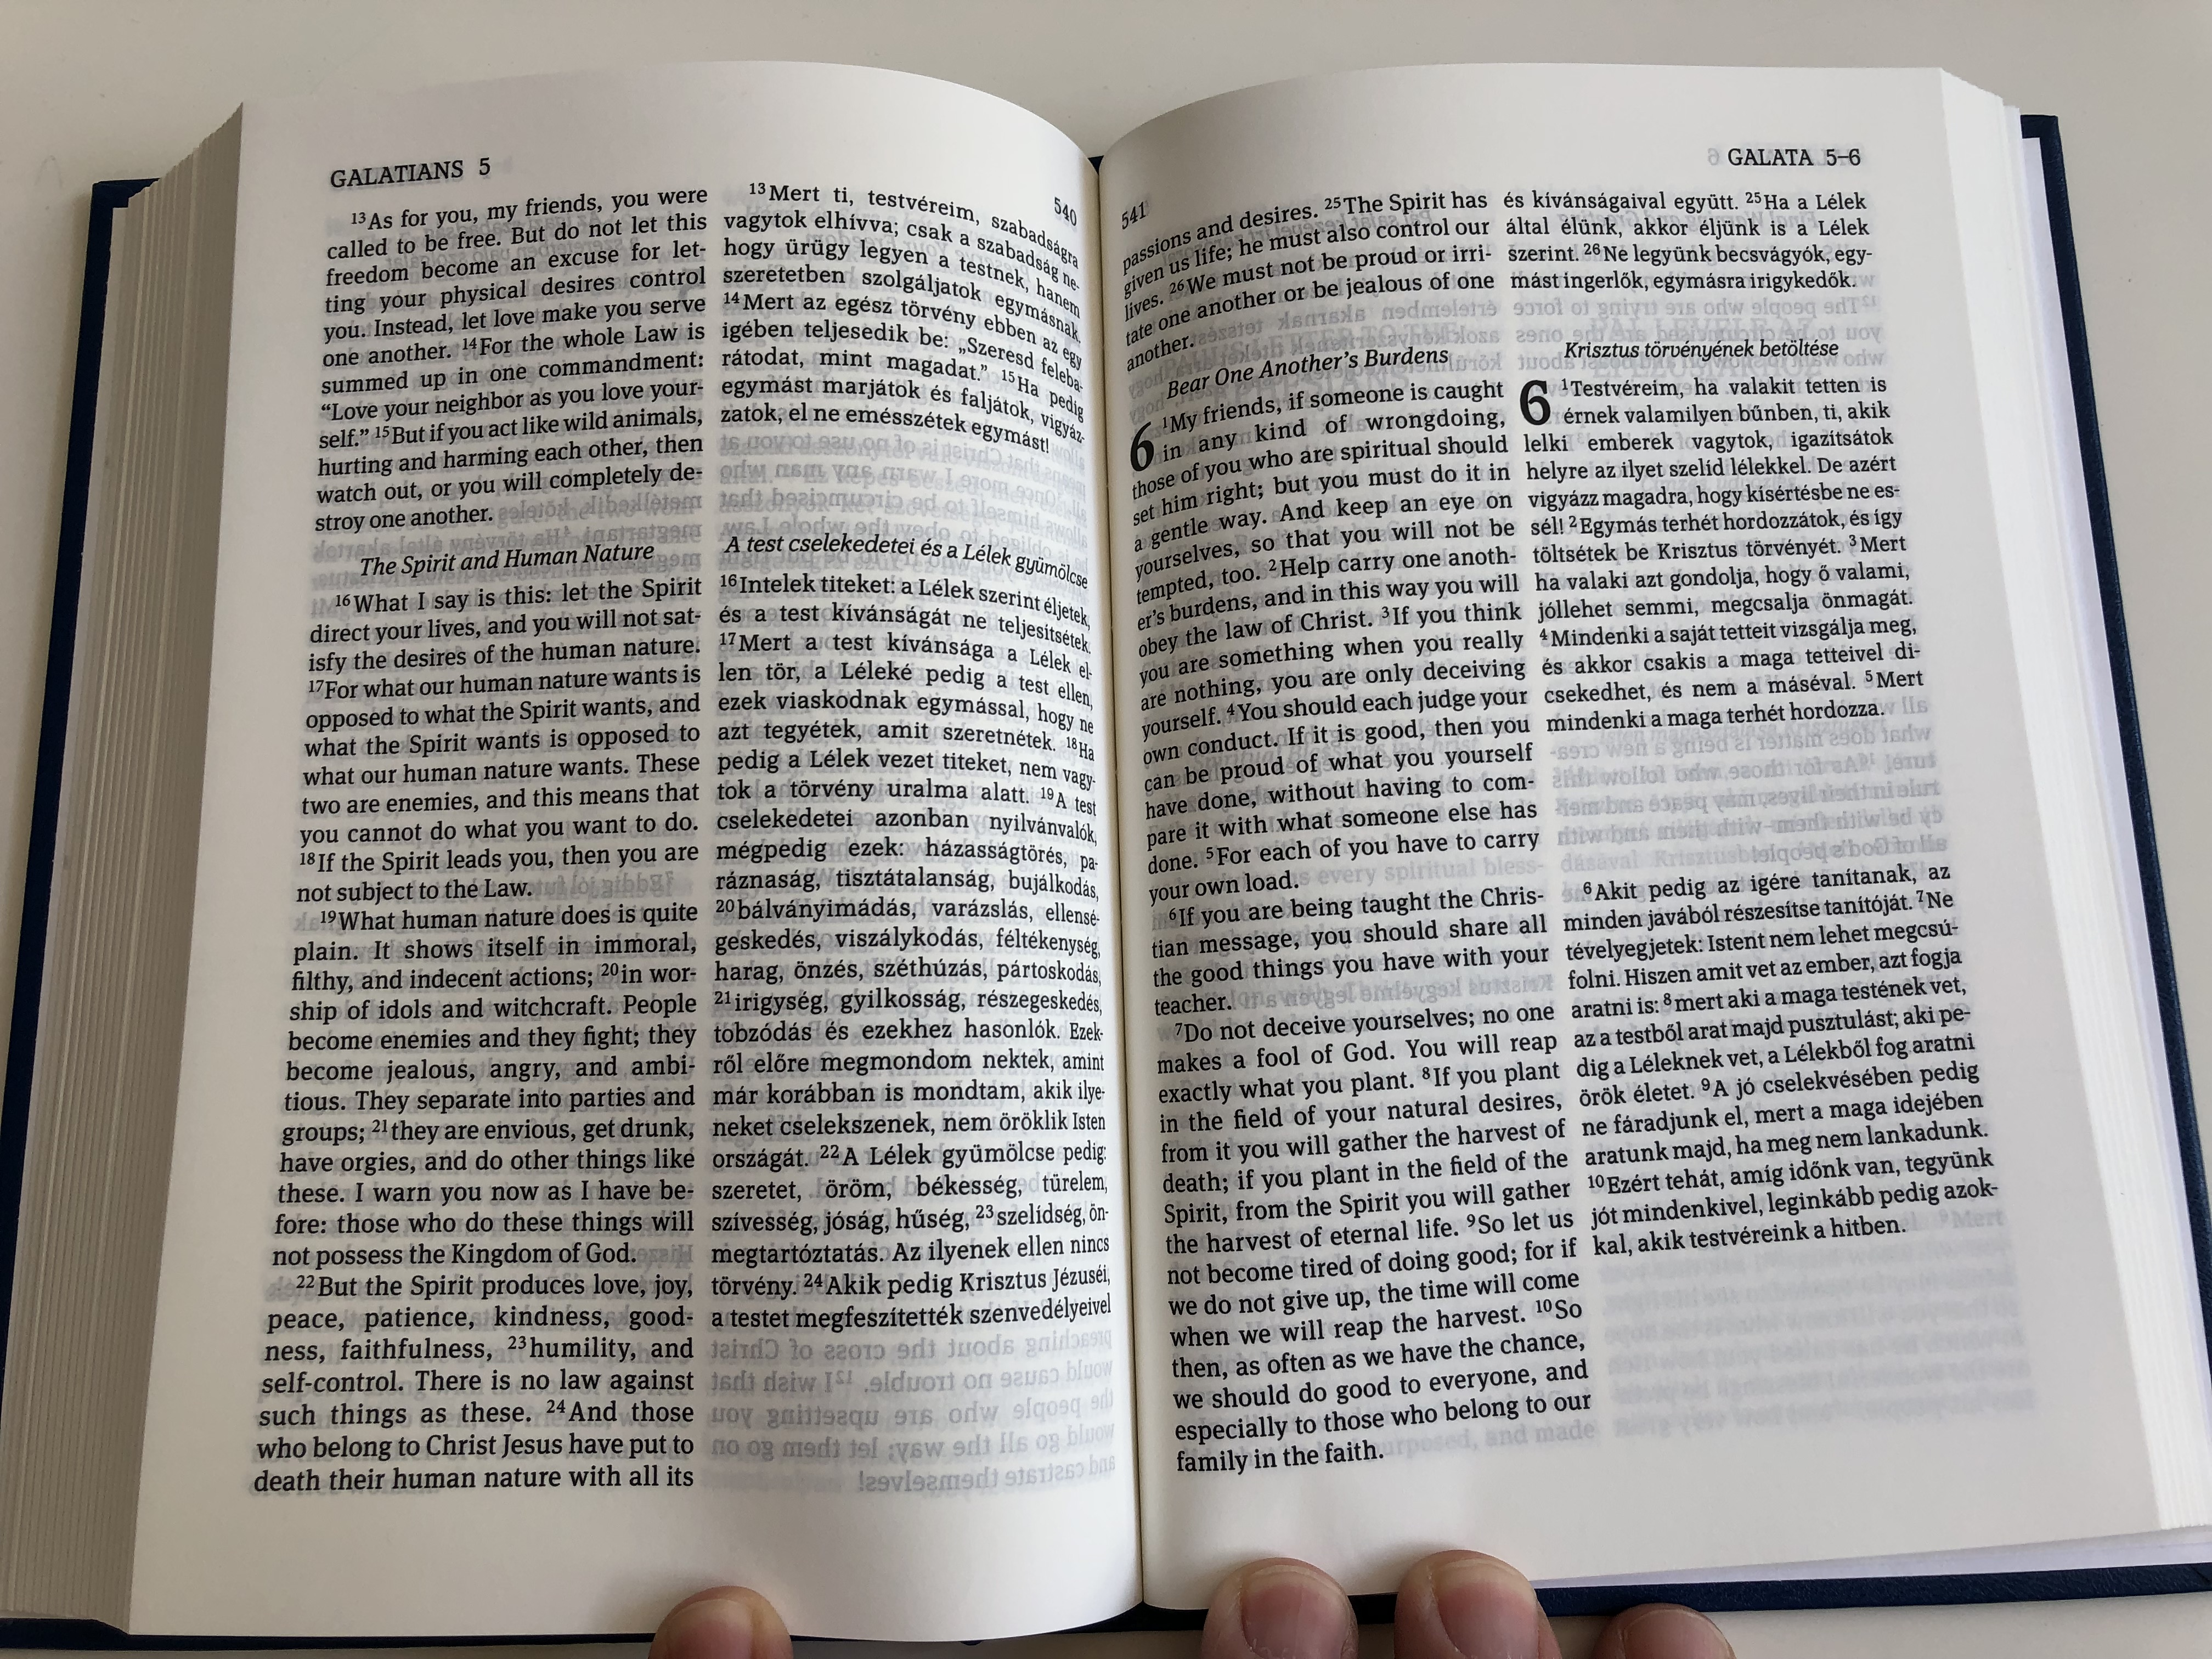 new-testament-gnt-jsz-vets-g-r-f-english-hungarian-bilingual-new-testament-parallel-column-text-hardcover-magyar-bibliat-rsulat-2019-8-.jpg